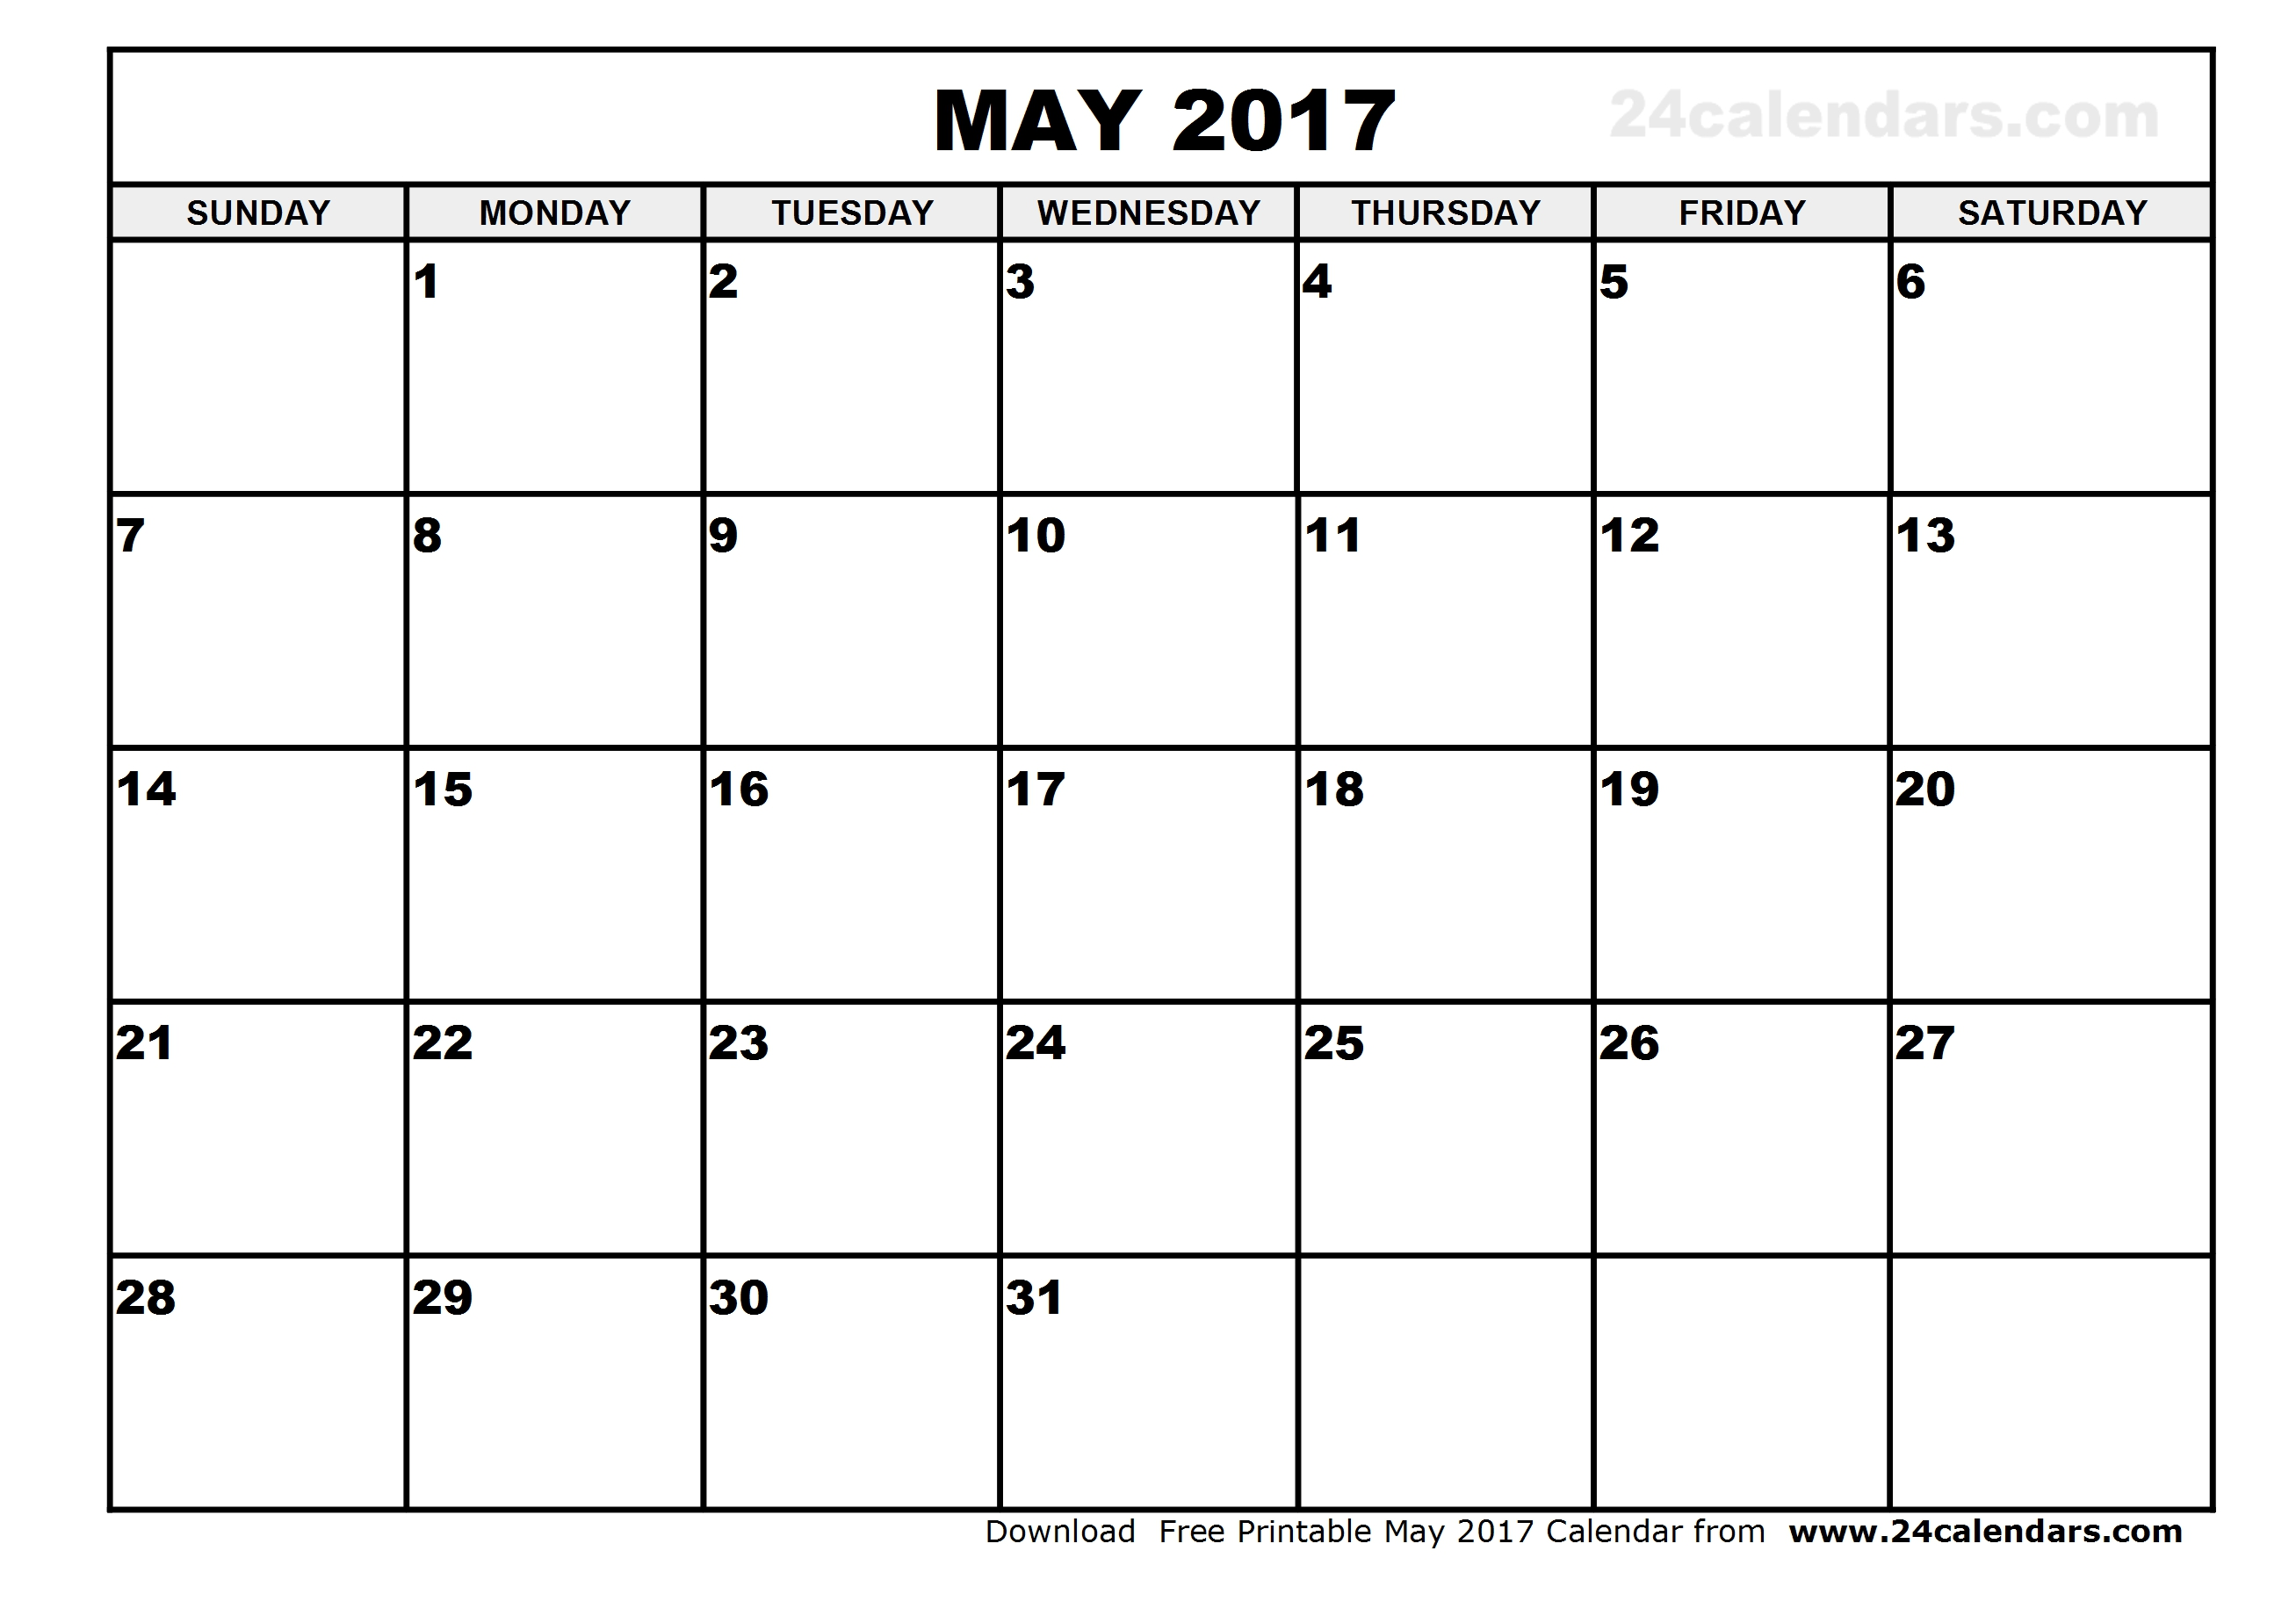 May 2017 Calendar | printable calendar templates